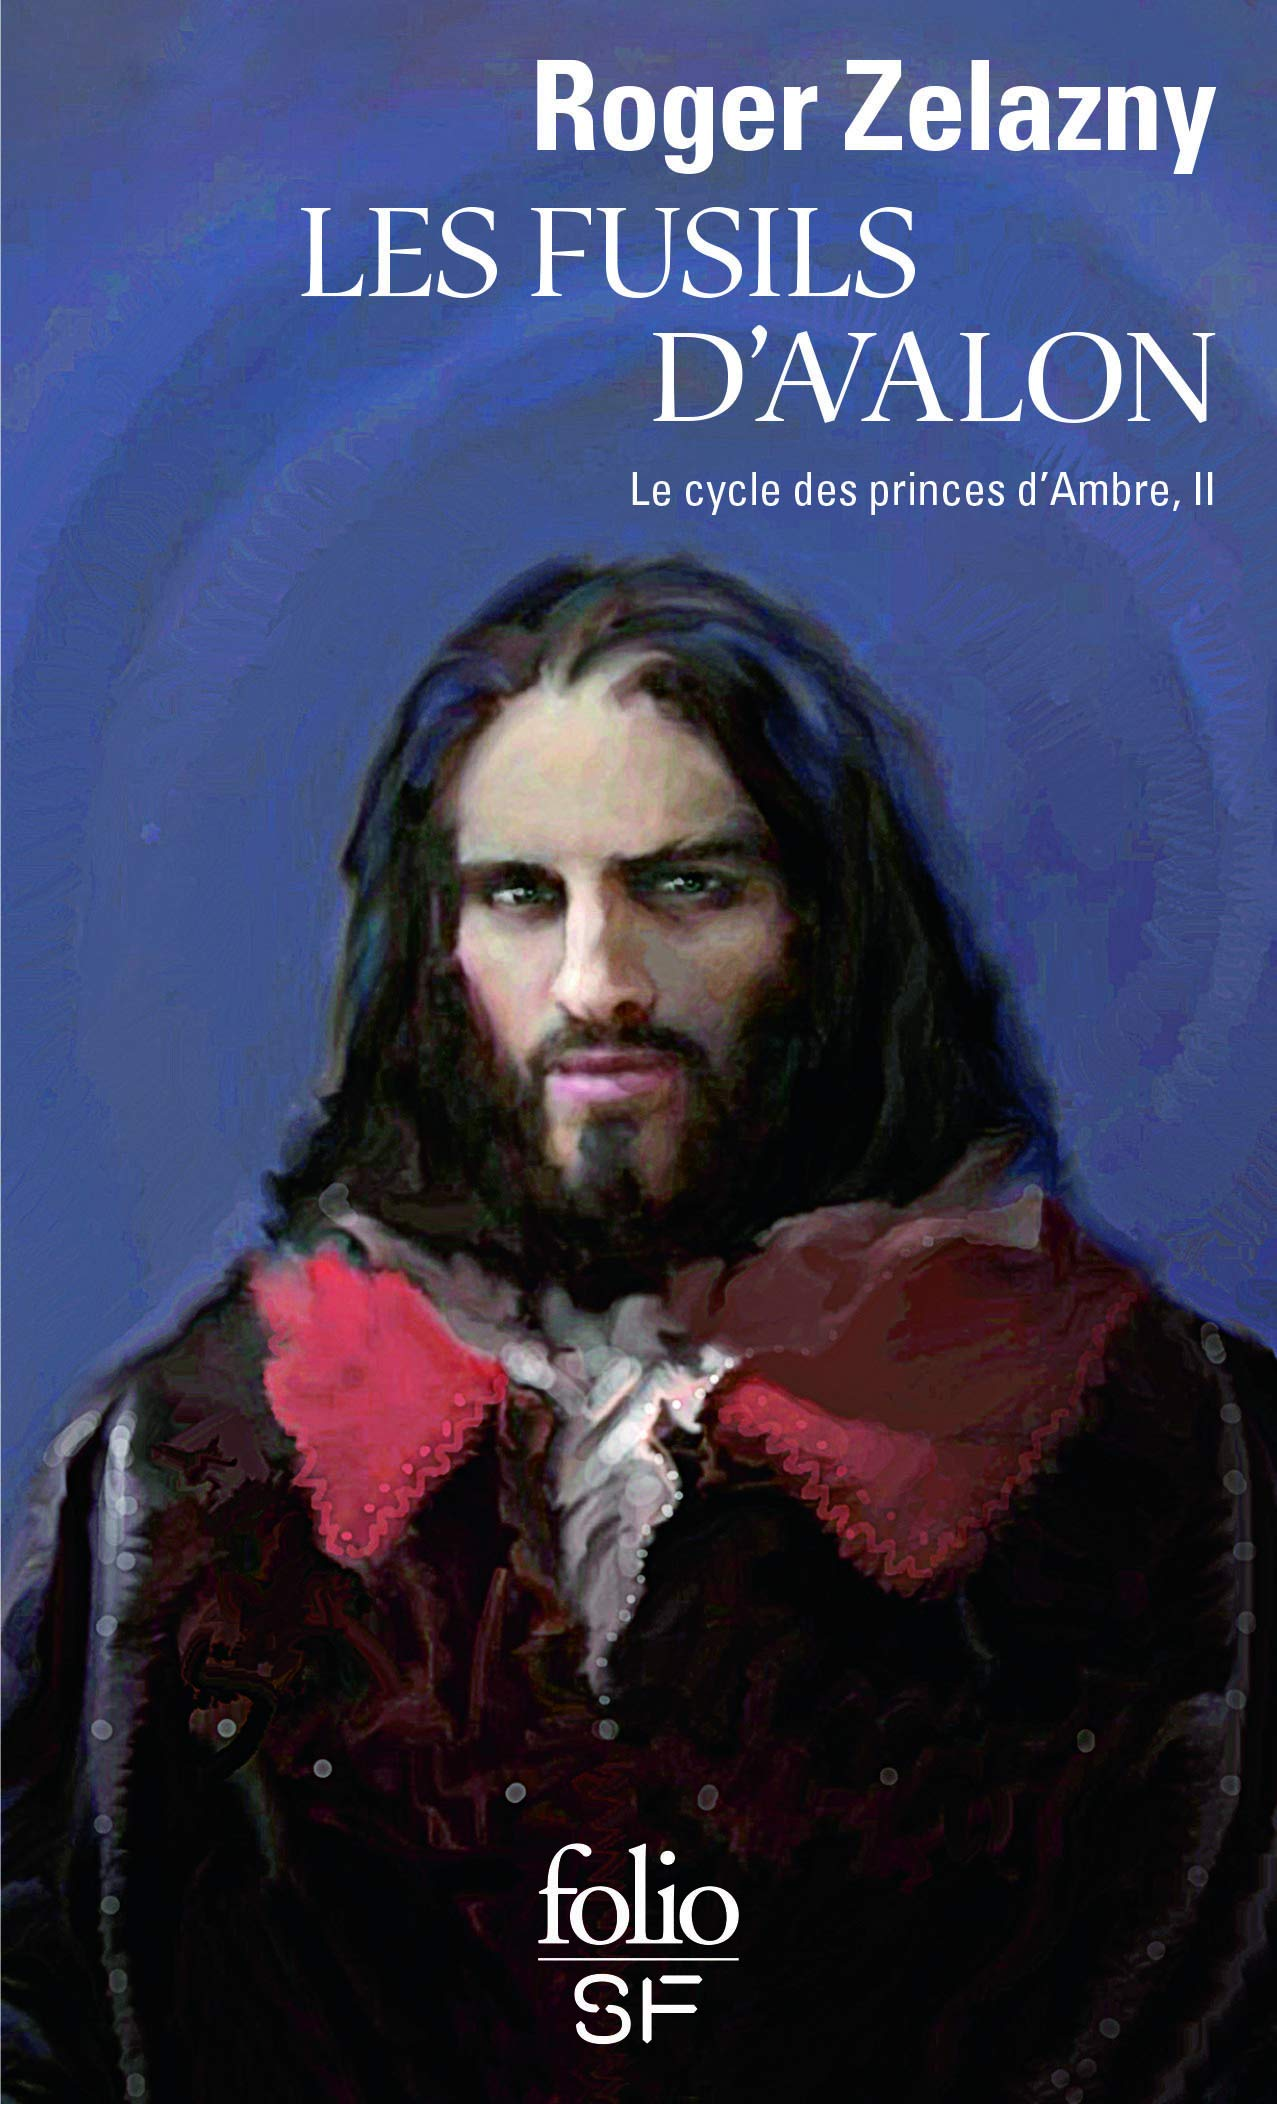 Le cycle des princes d'Ambre, Tome 2